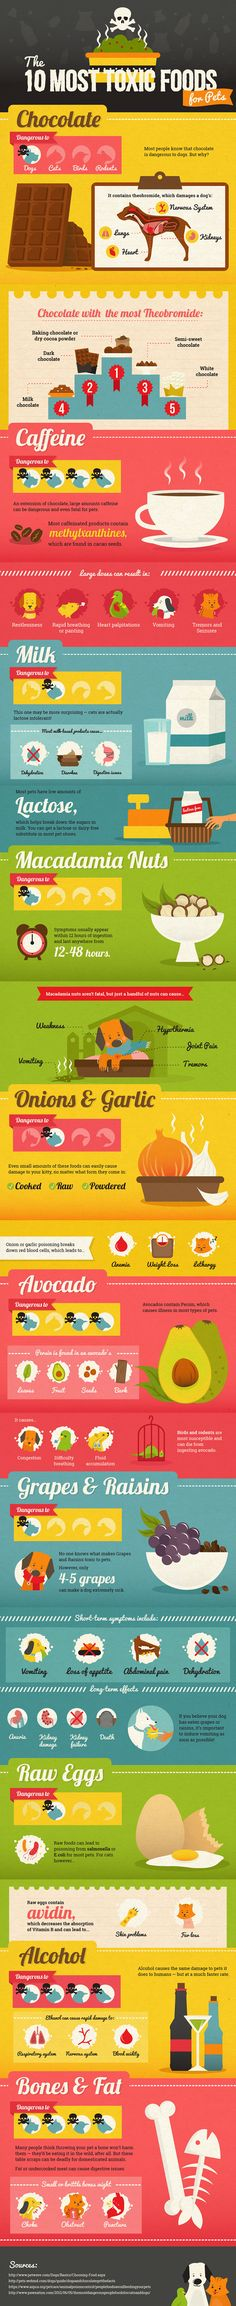 Infographic of the 10 Most Toxic Foods for Pets